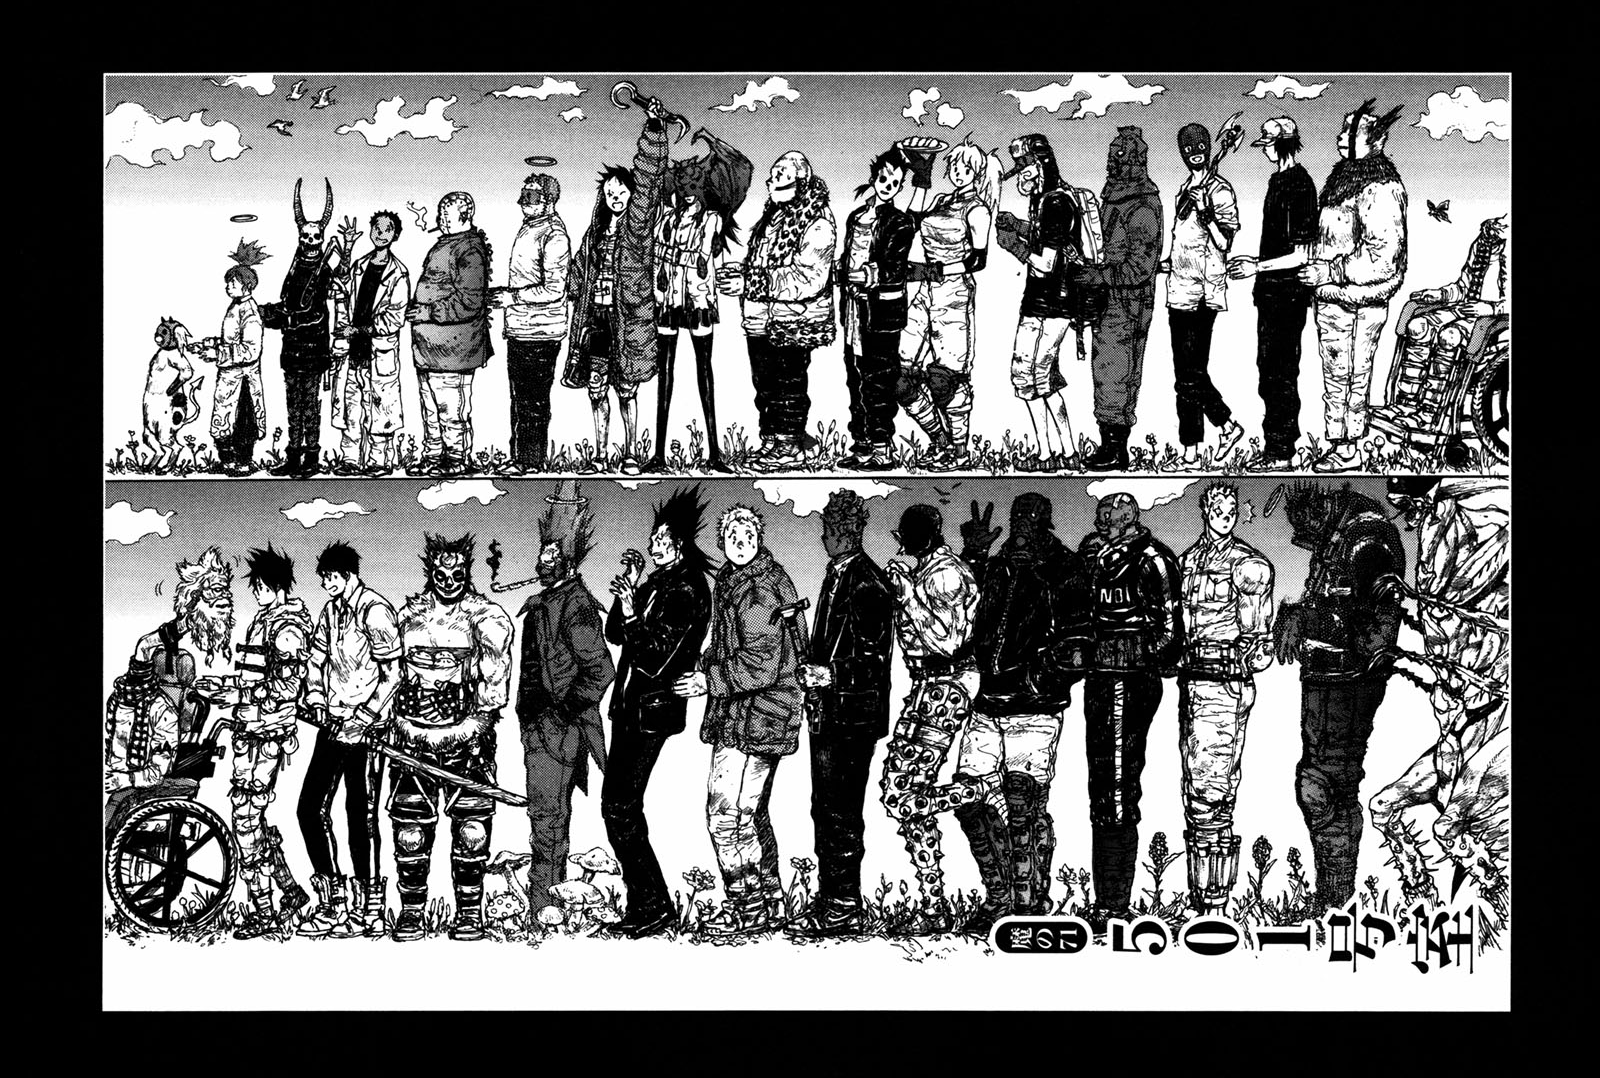 The cast of Dorohedoro line up in order of size for the cover page of one of the chapters.